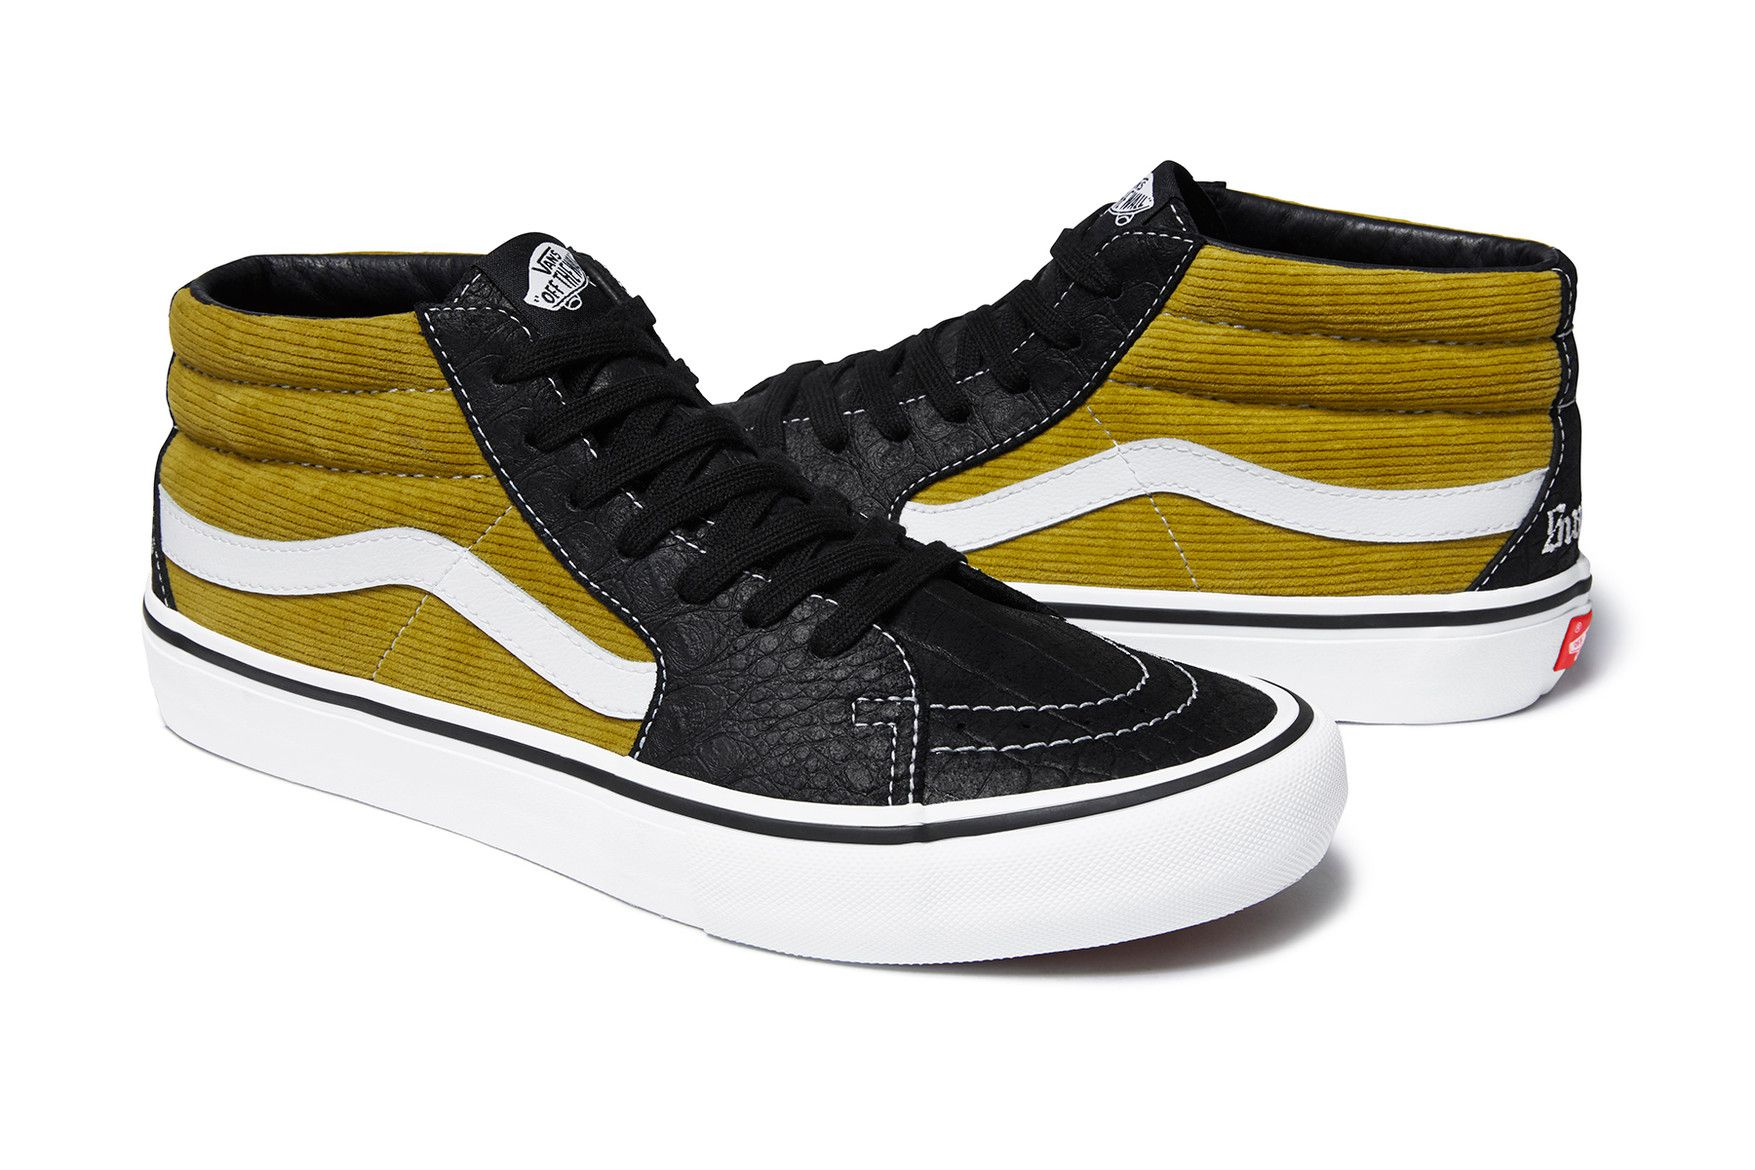 Supreme & Vans Meld Corduroy & Crocodile in Latest Footwear